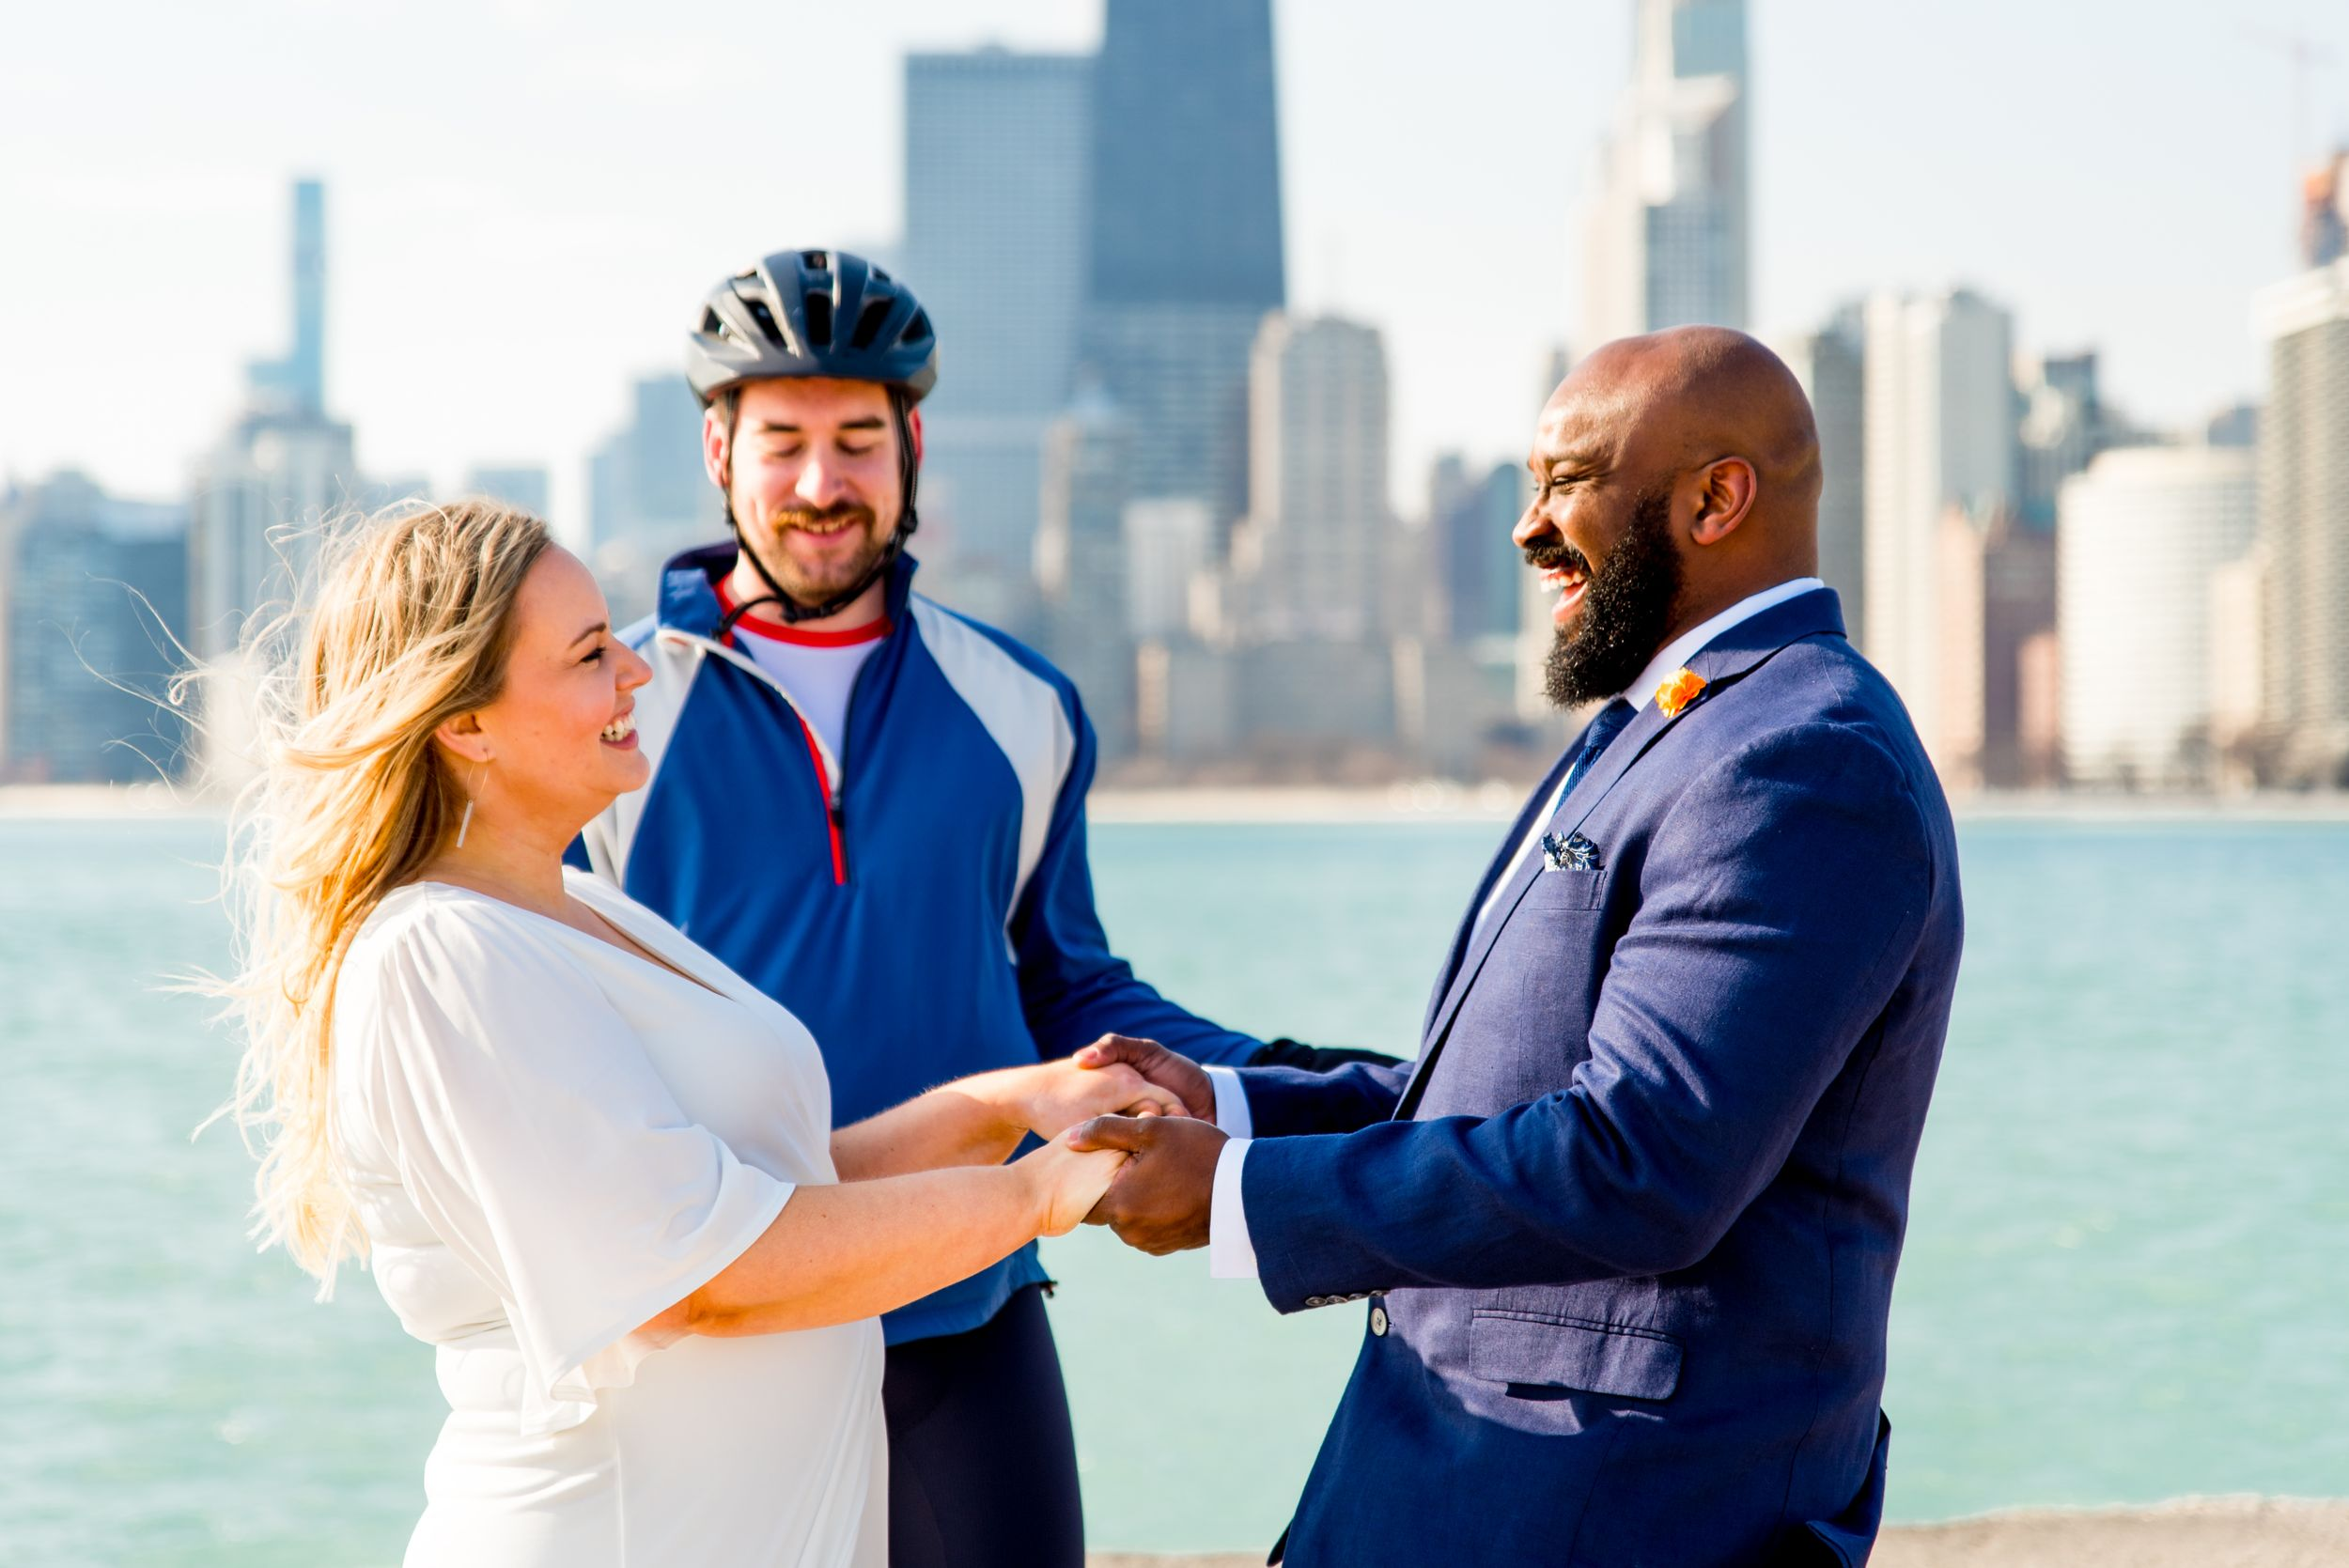 man and woman laughing holding hands as friend in biking outfit marries them at north avenue beach elopement